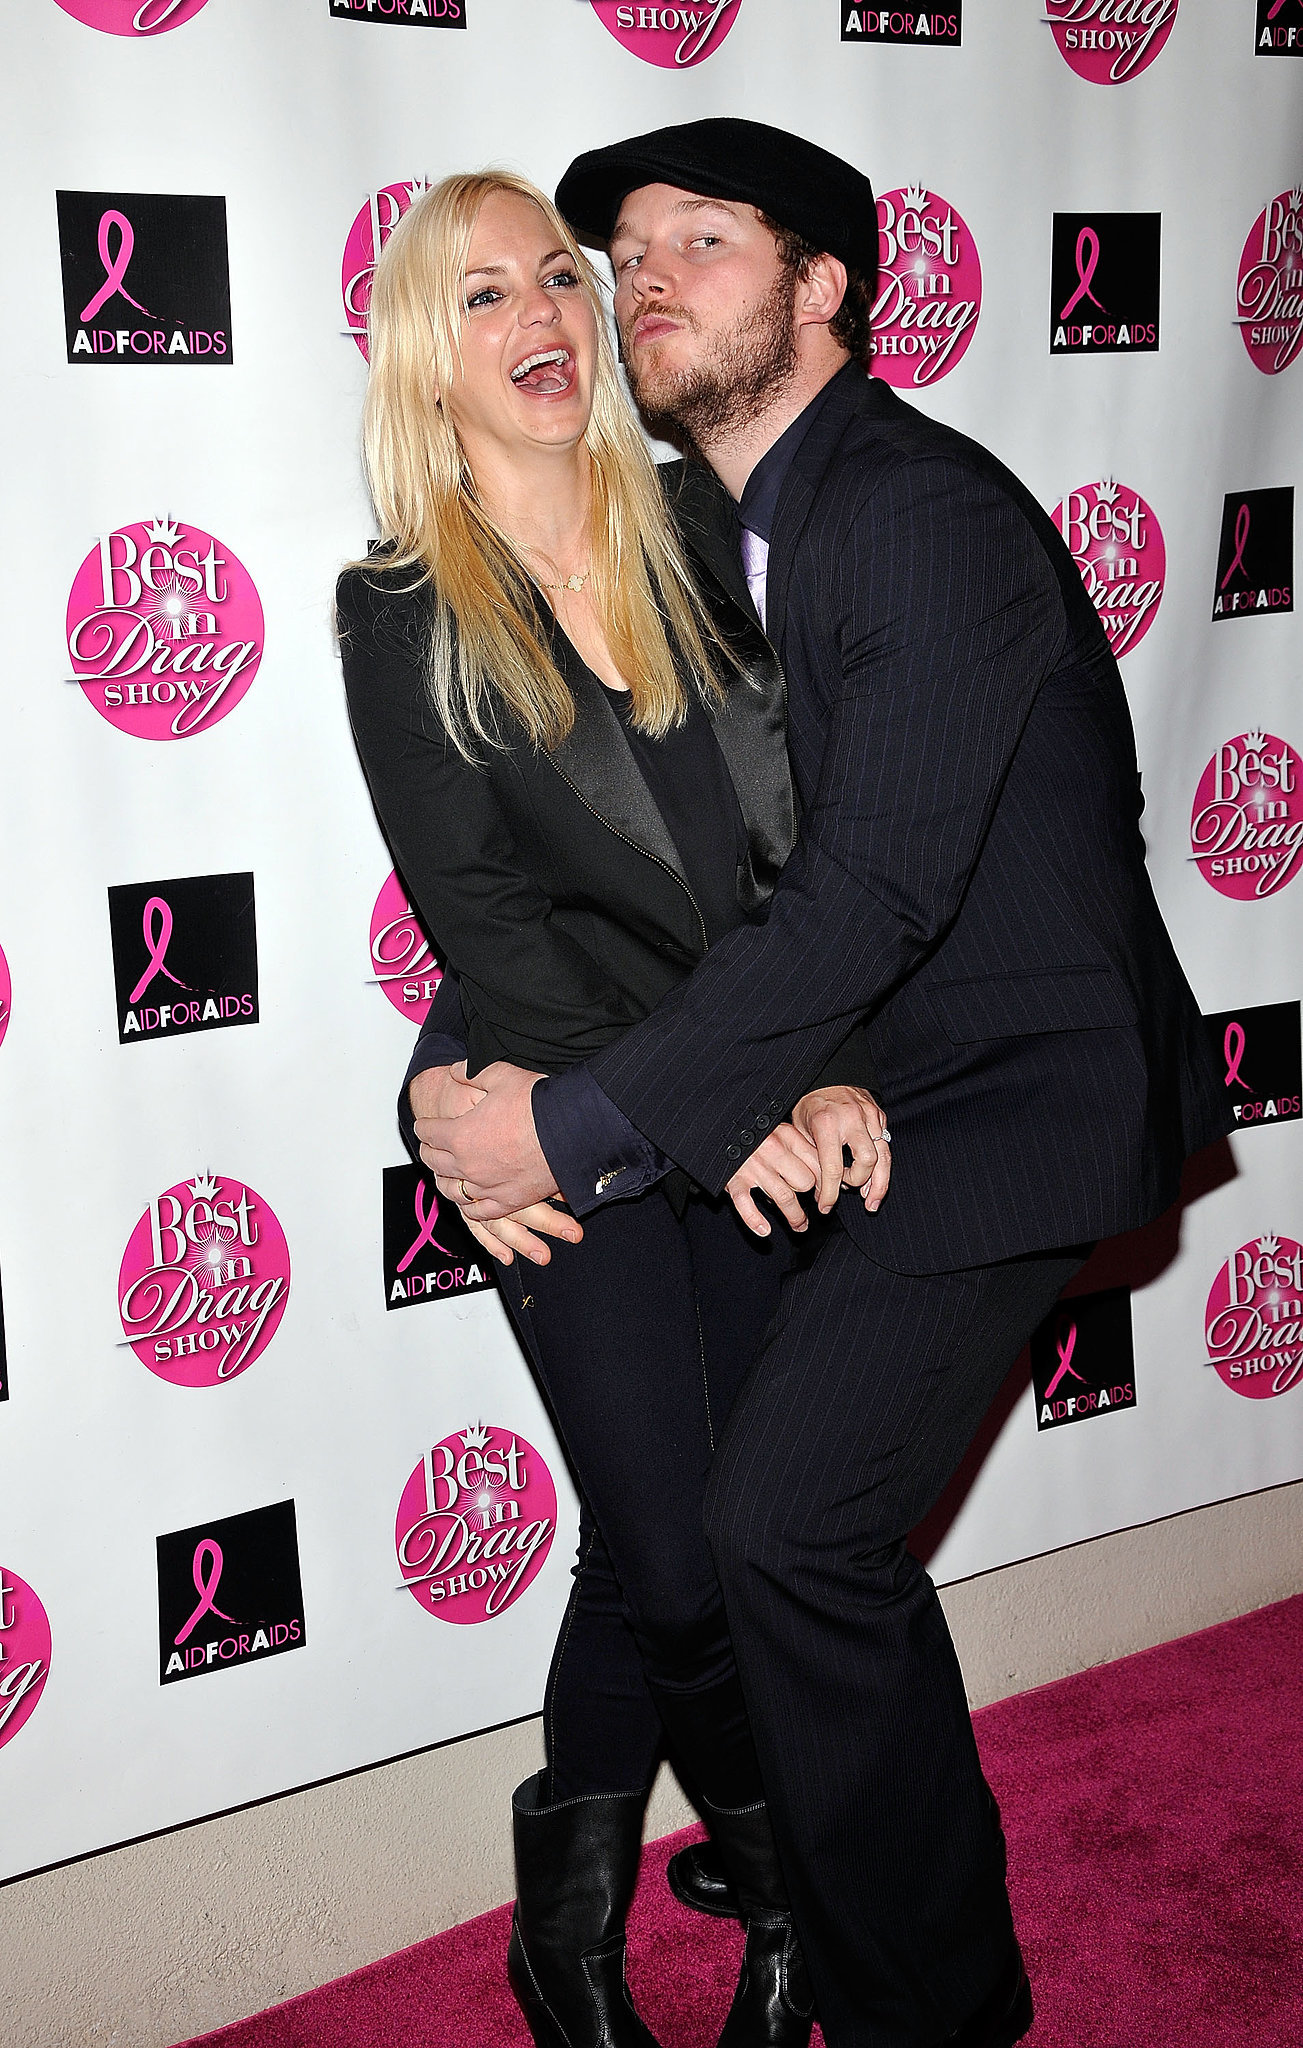 The couple posed for the cameras at the eighth annual Best in Drag Show event in LA in October 2010.